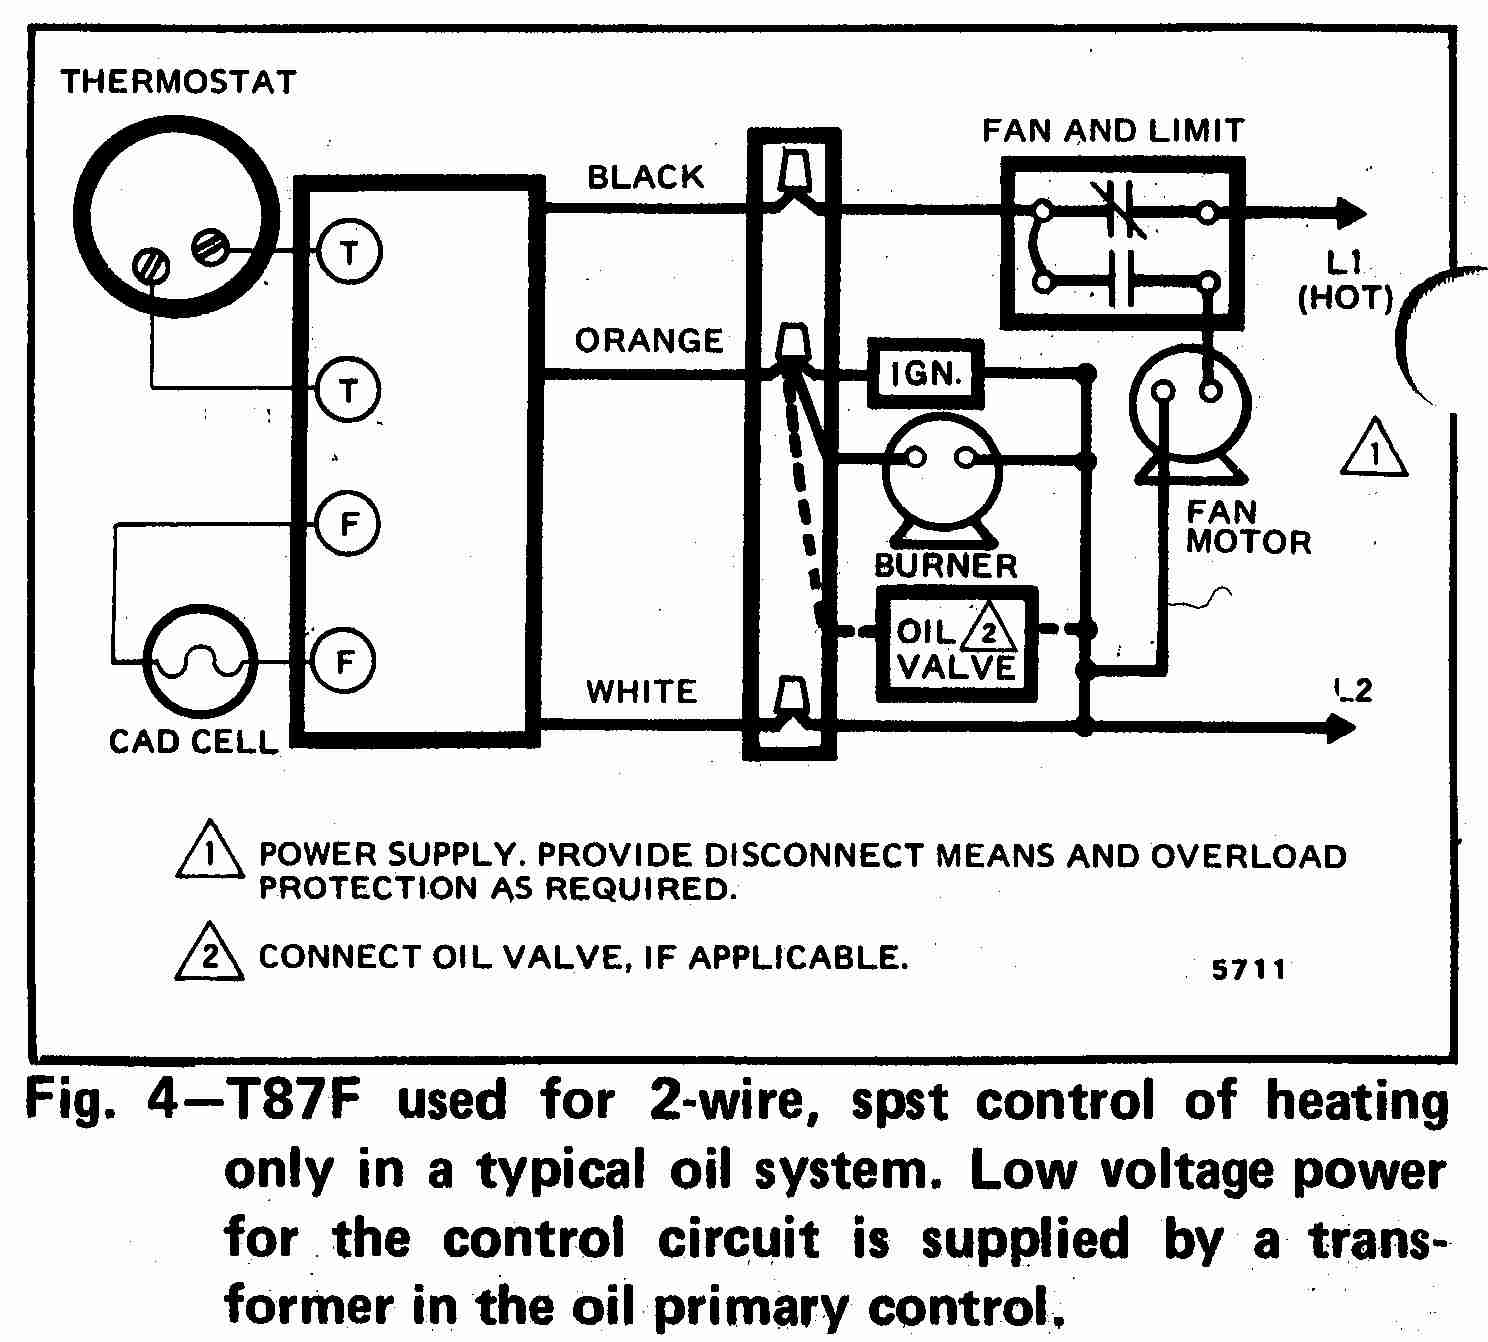 TT_T87F_0002_2W_DJF room thermostat wiring diagrams for hvac systems residential hvac wiring diagrams at eliteediting.co